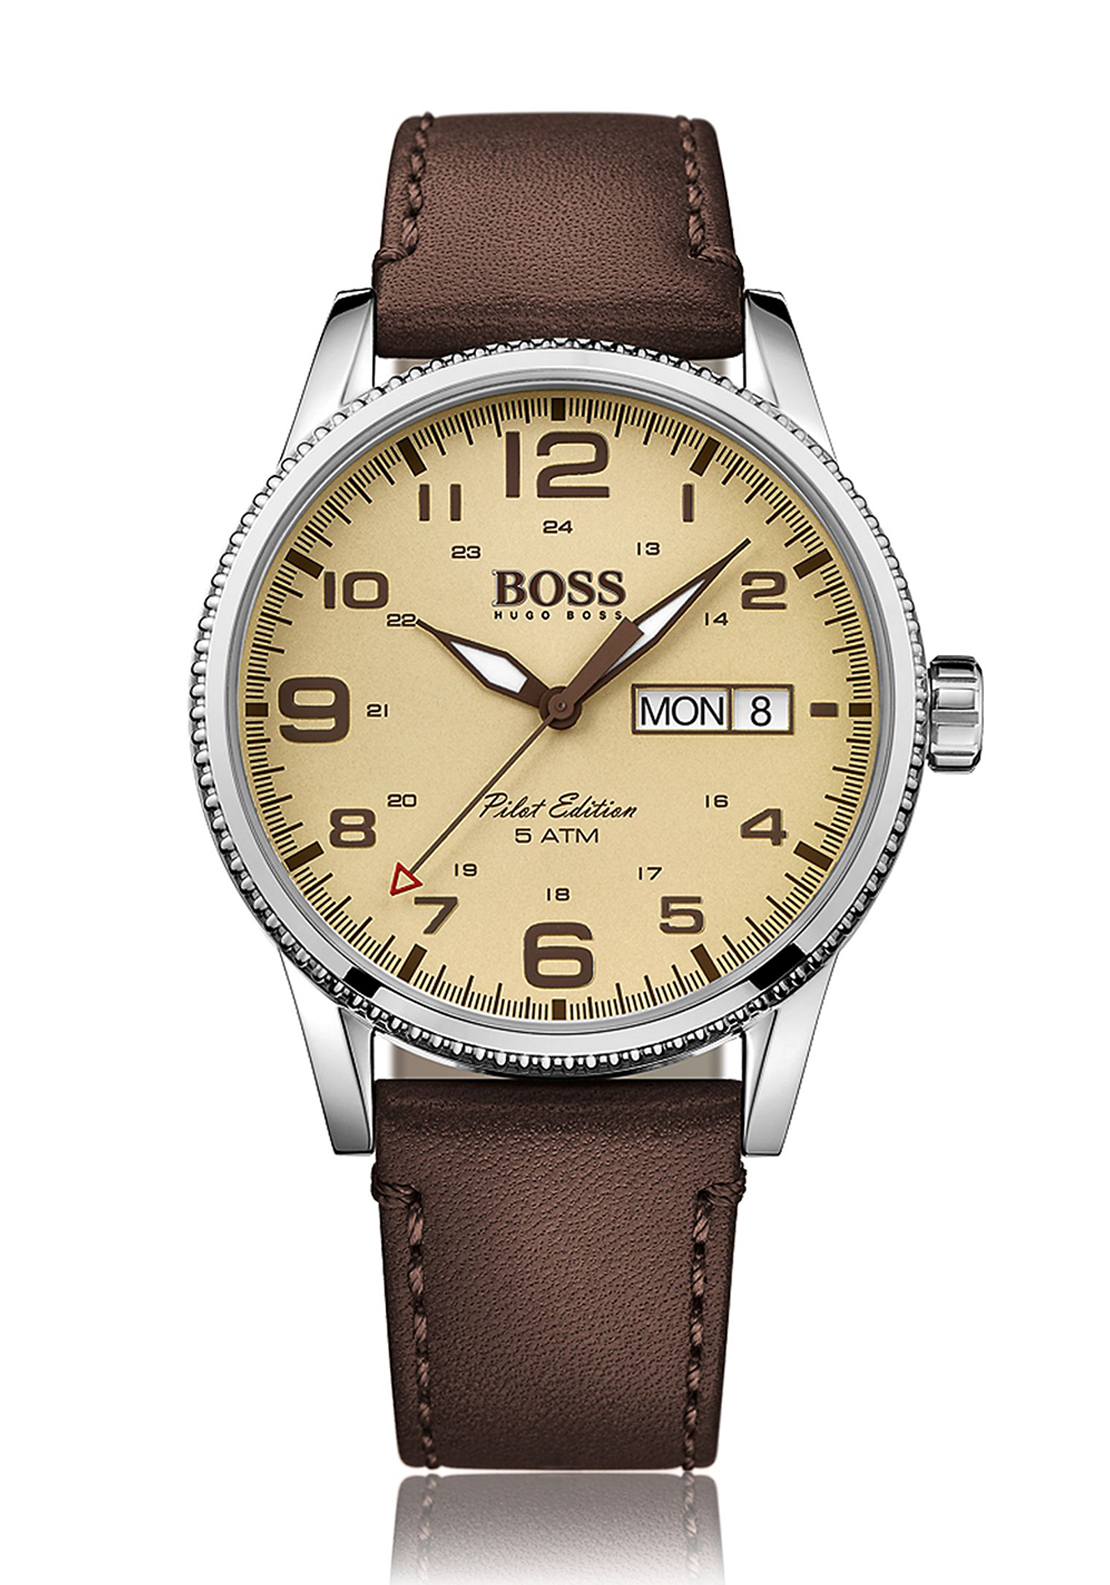 Hugo Boss Mens 1513332 Pilot Edition Leather Watch, Brown